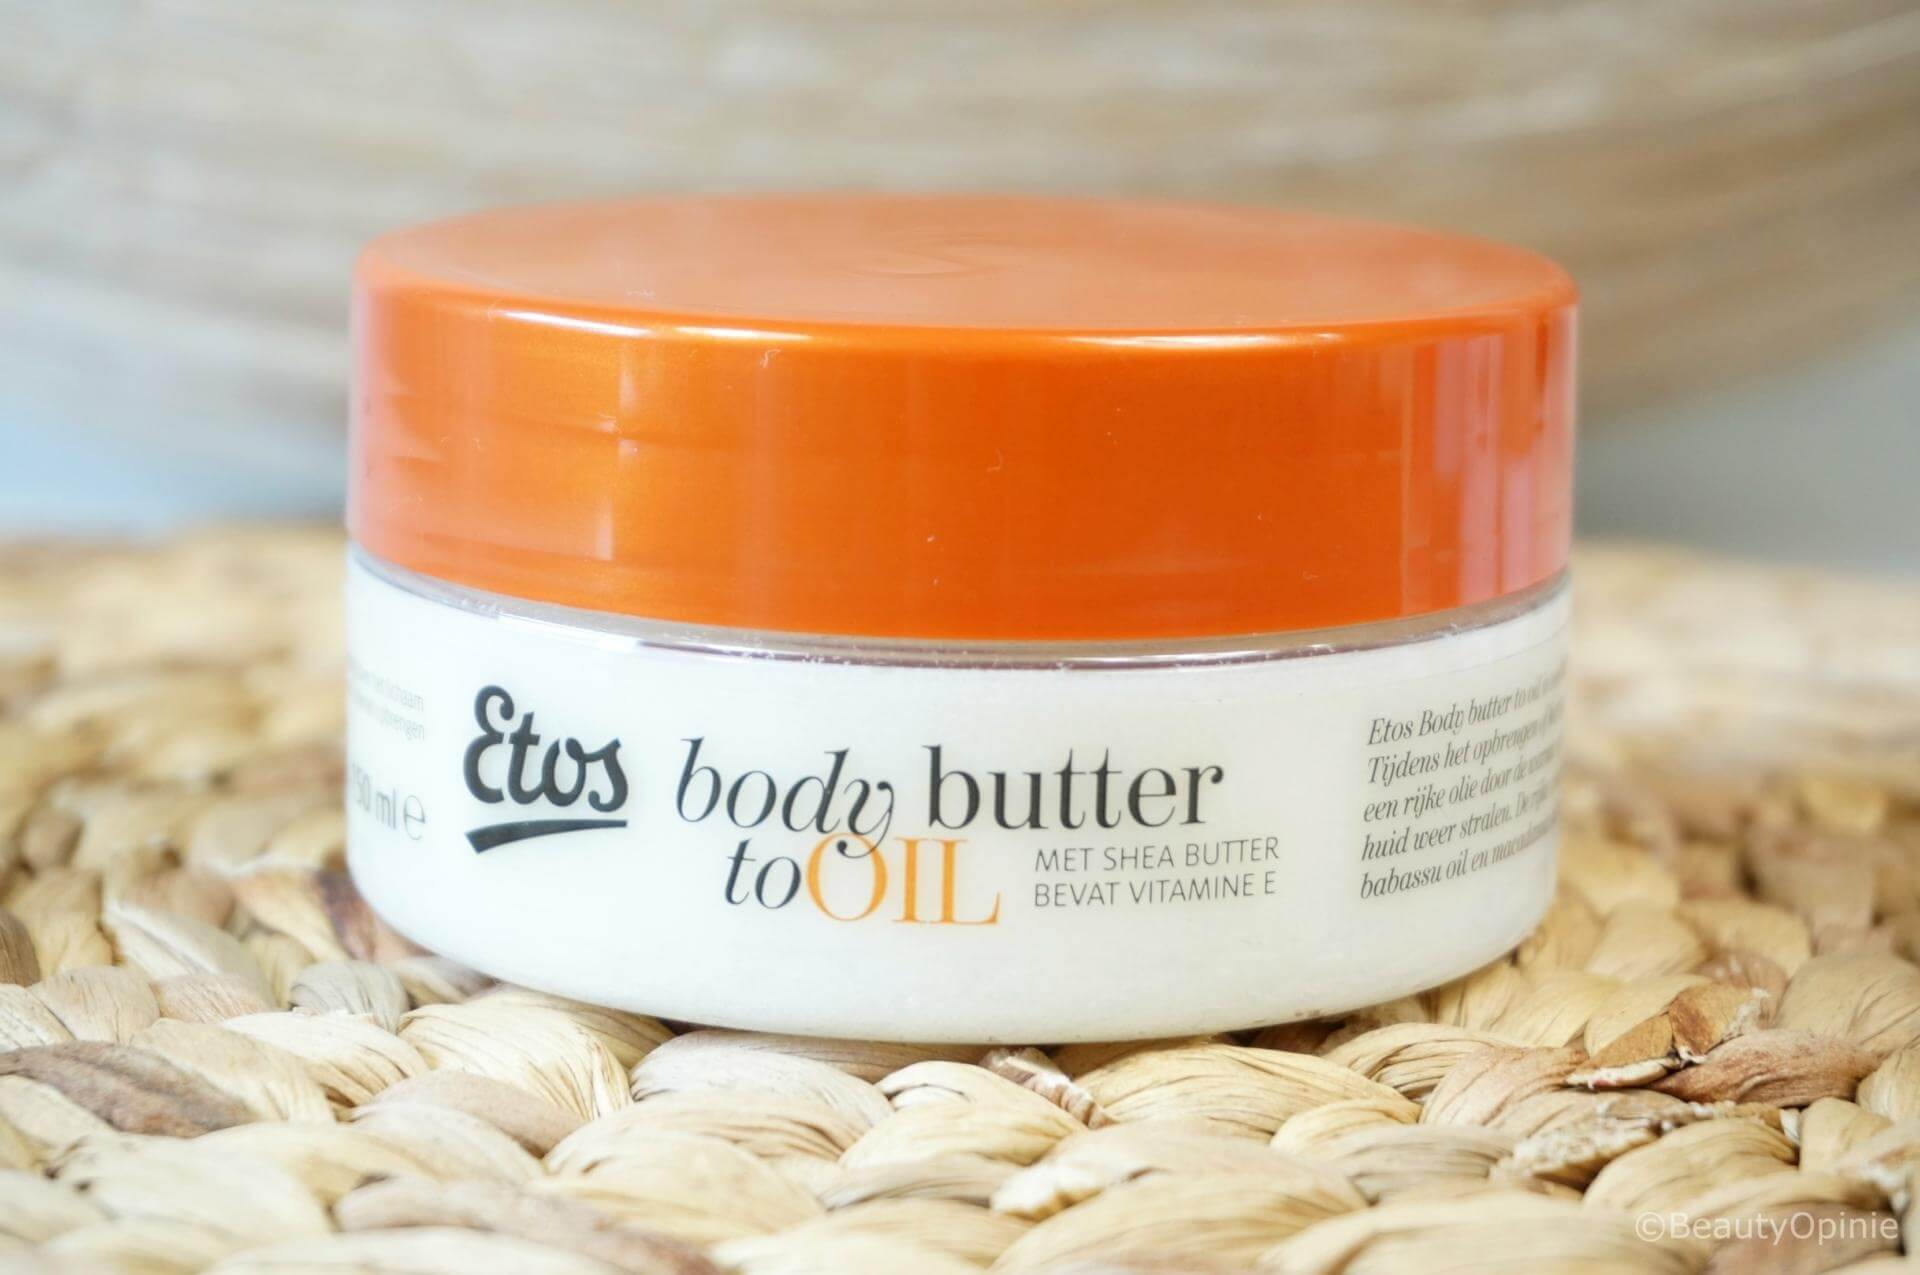 Etos Body Butter to Oil